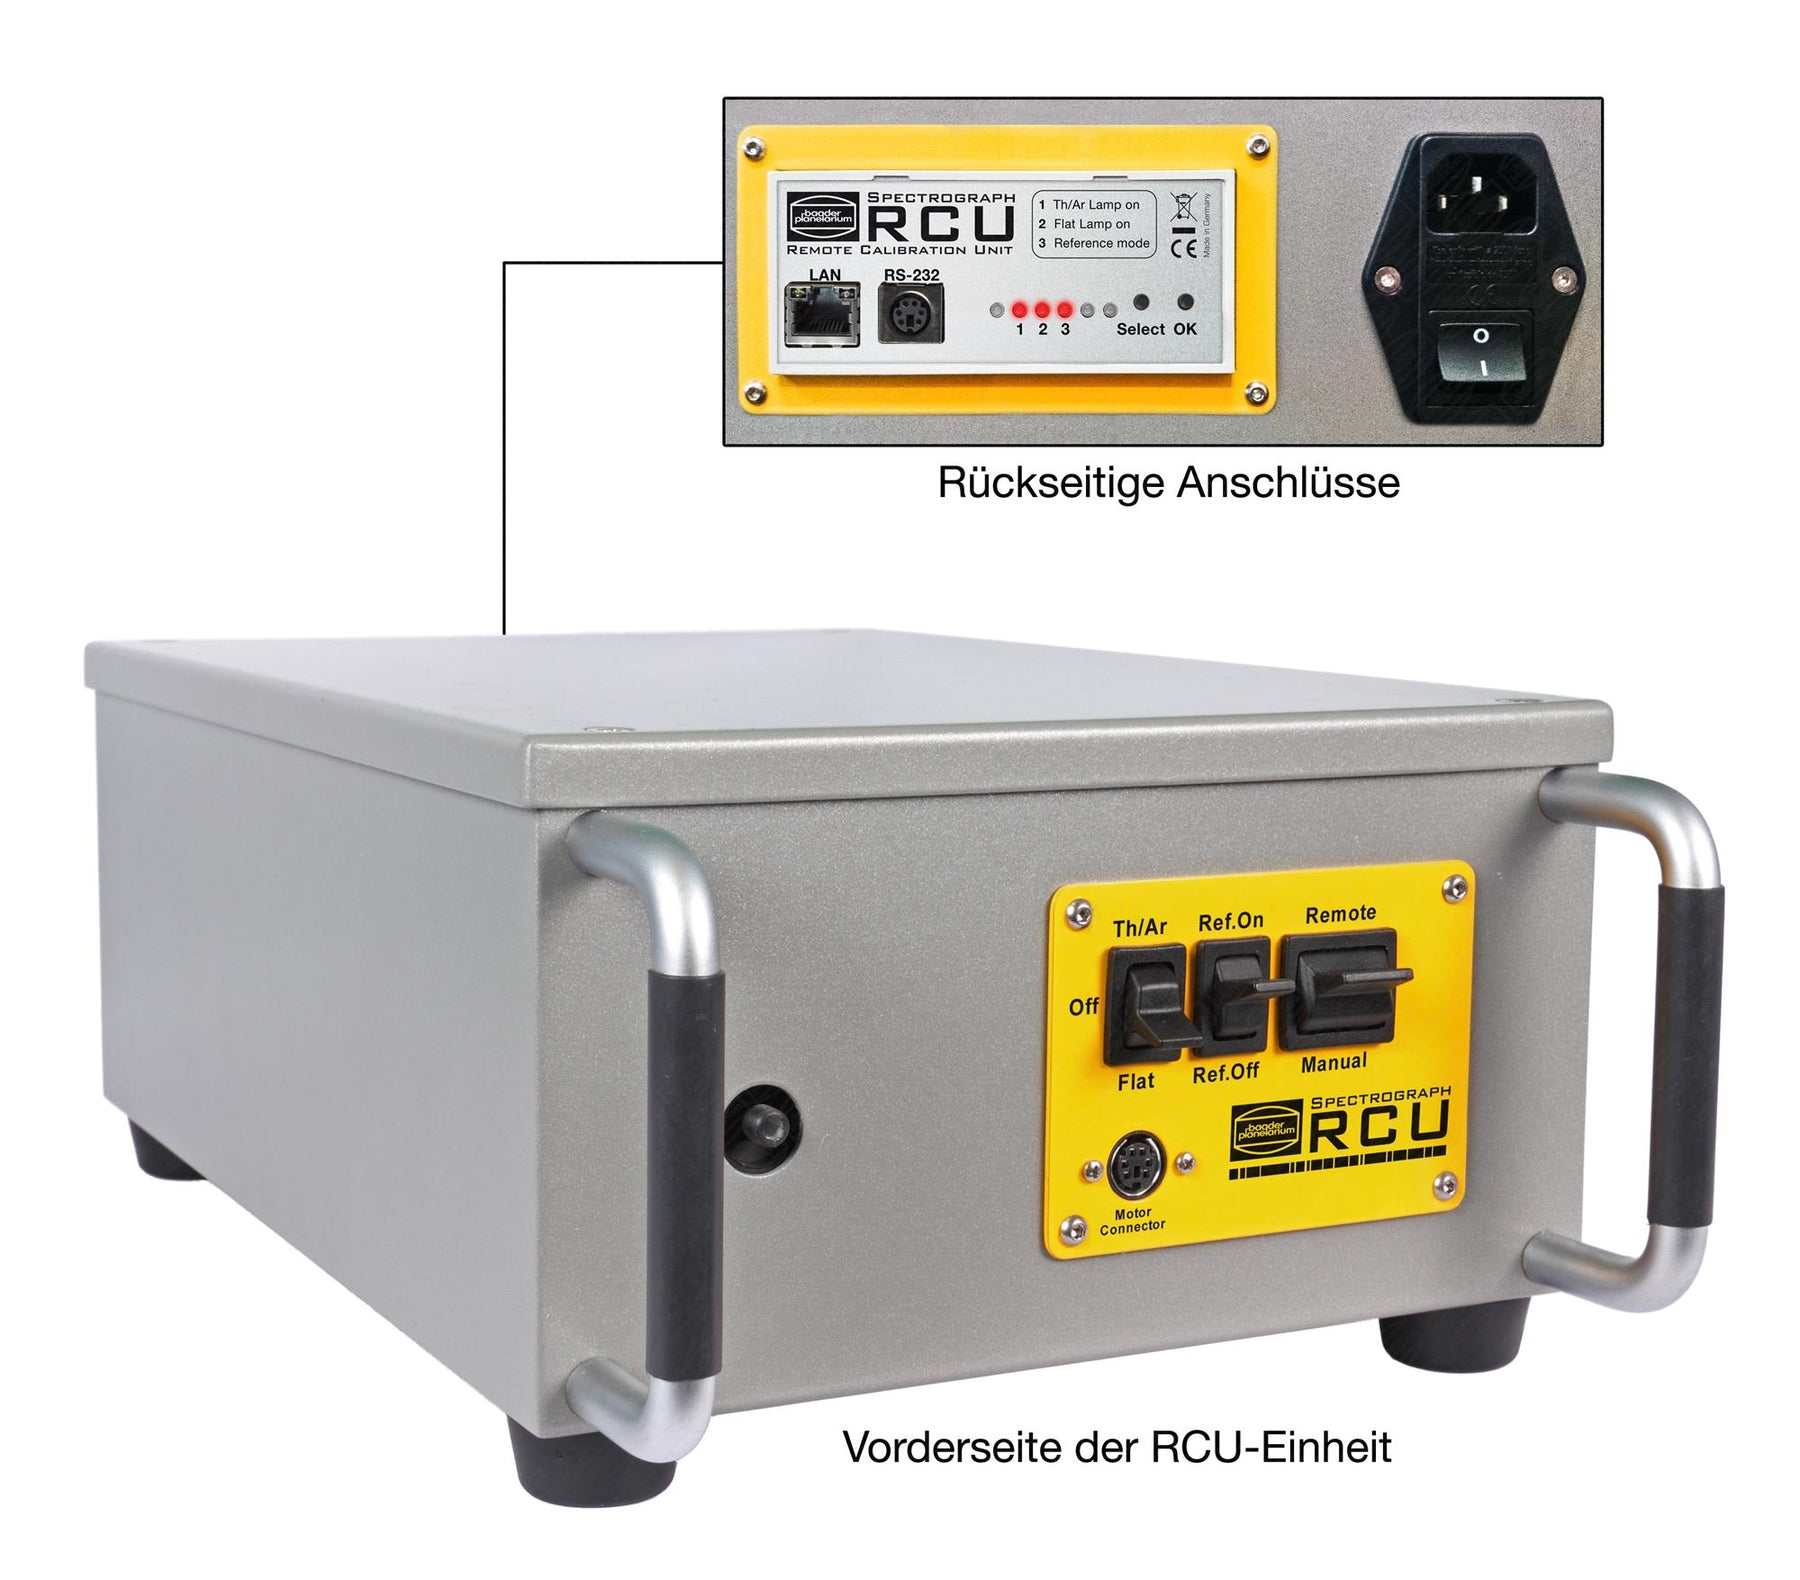 Baches Rcu Remote Control Unit Calibration Set David Hinds Ltd Wiring Circuit Supplied With The